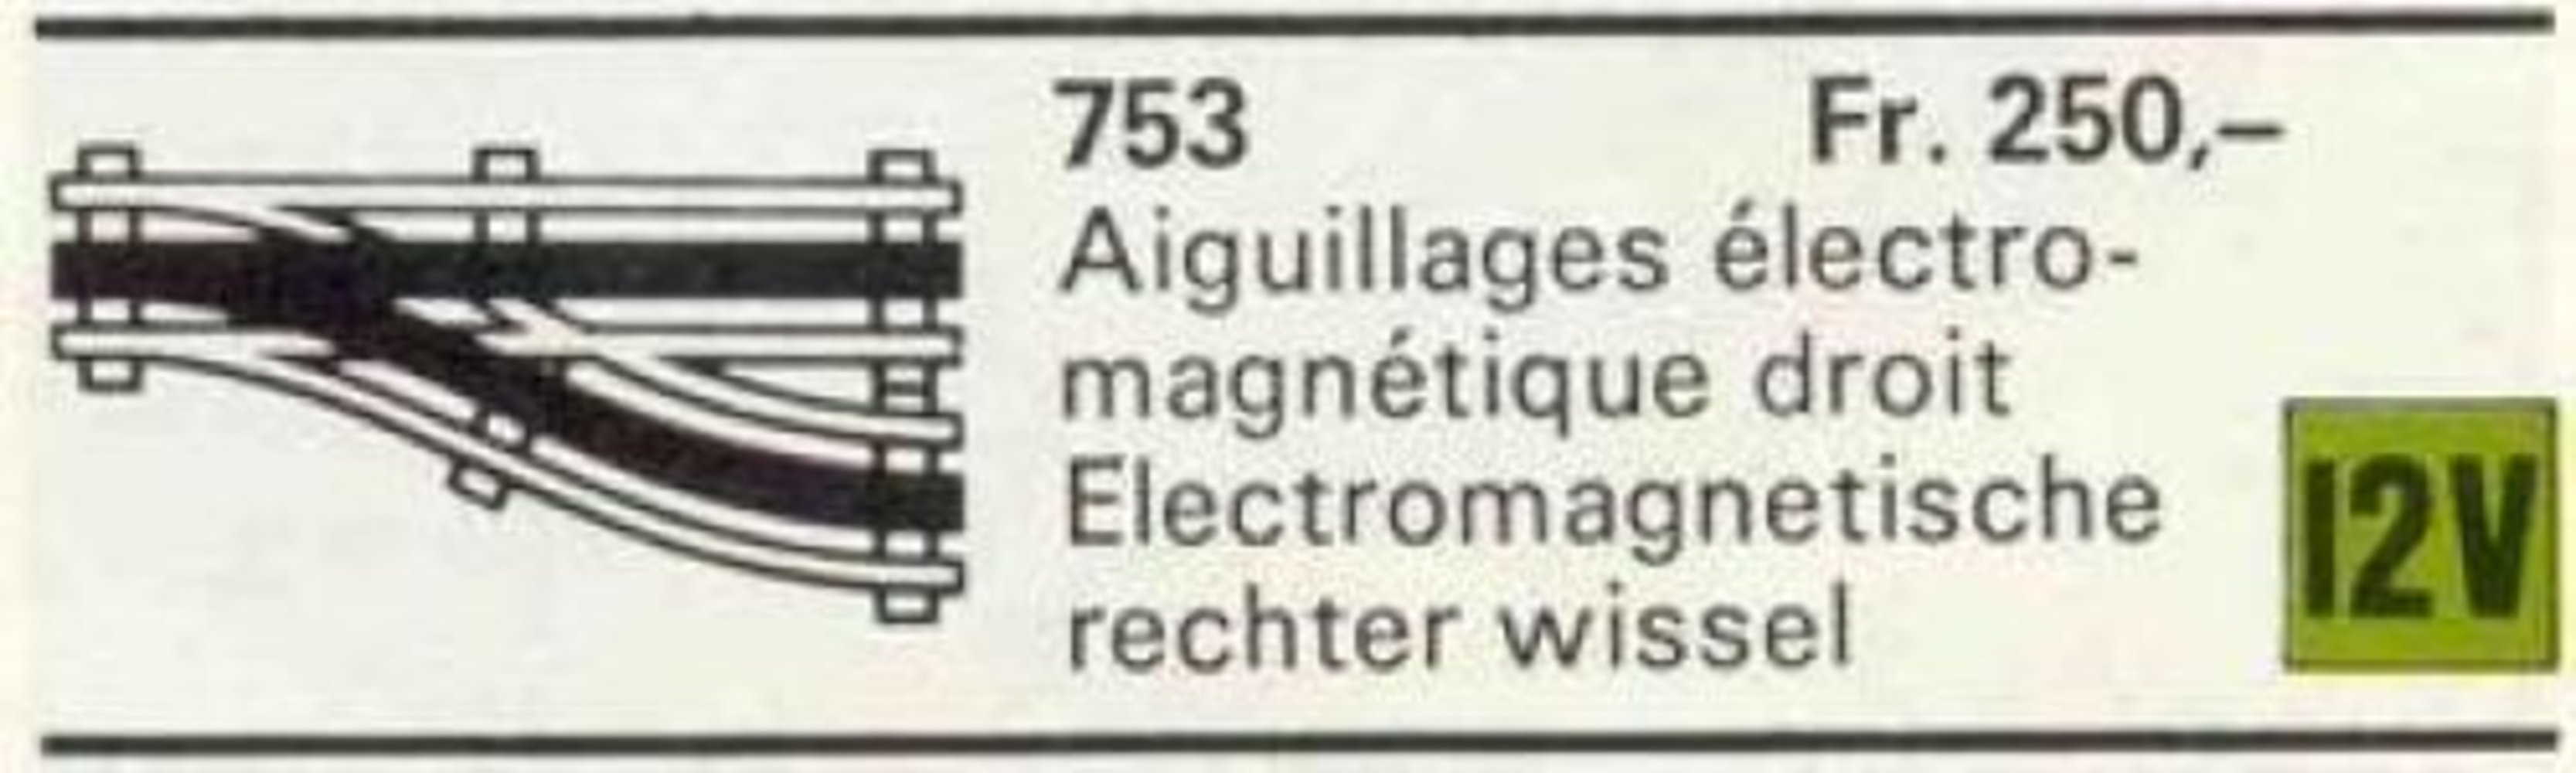 Automatic Right Electric Switch